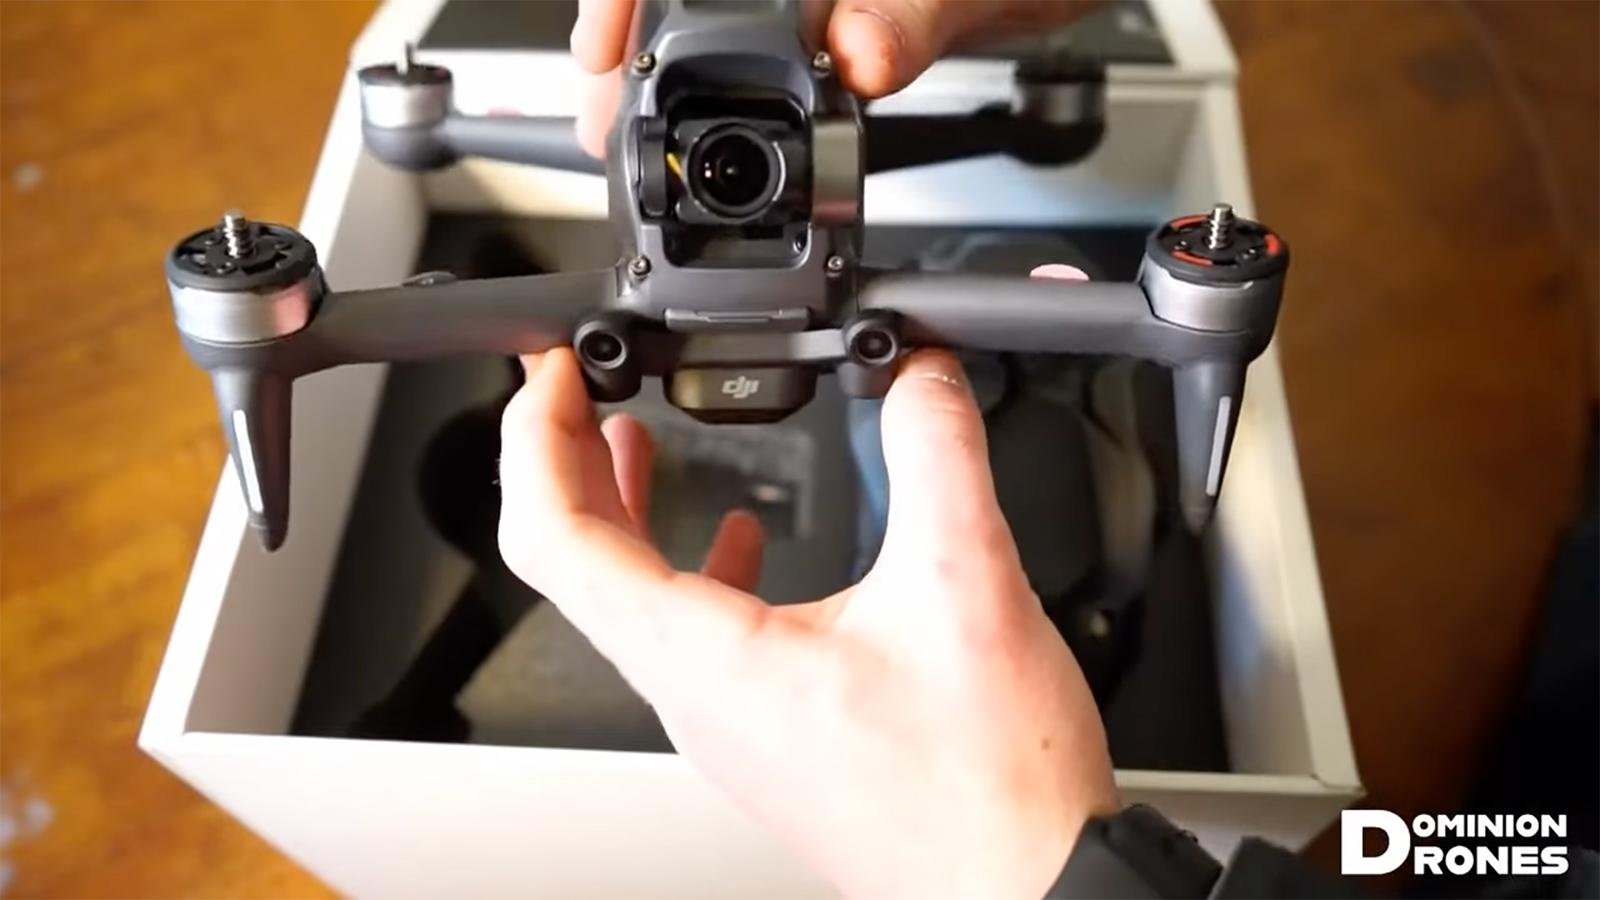 DJI's future first-person drone surfaces in an unboxing video - Yahoo Tech